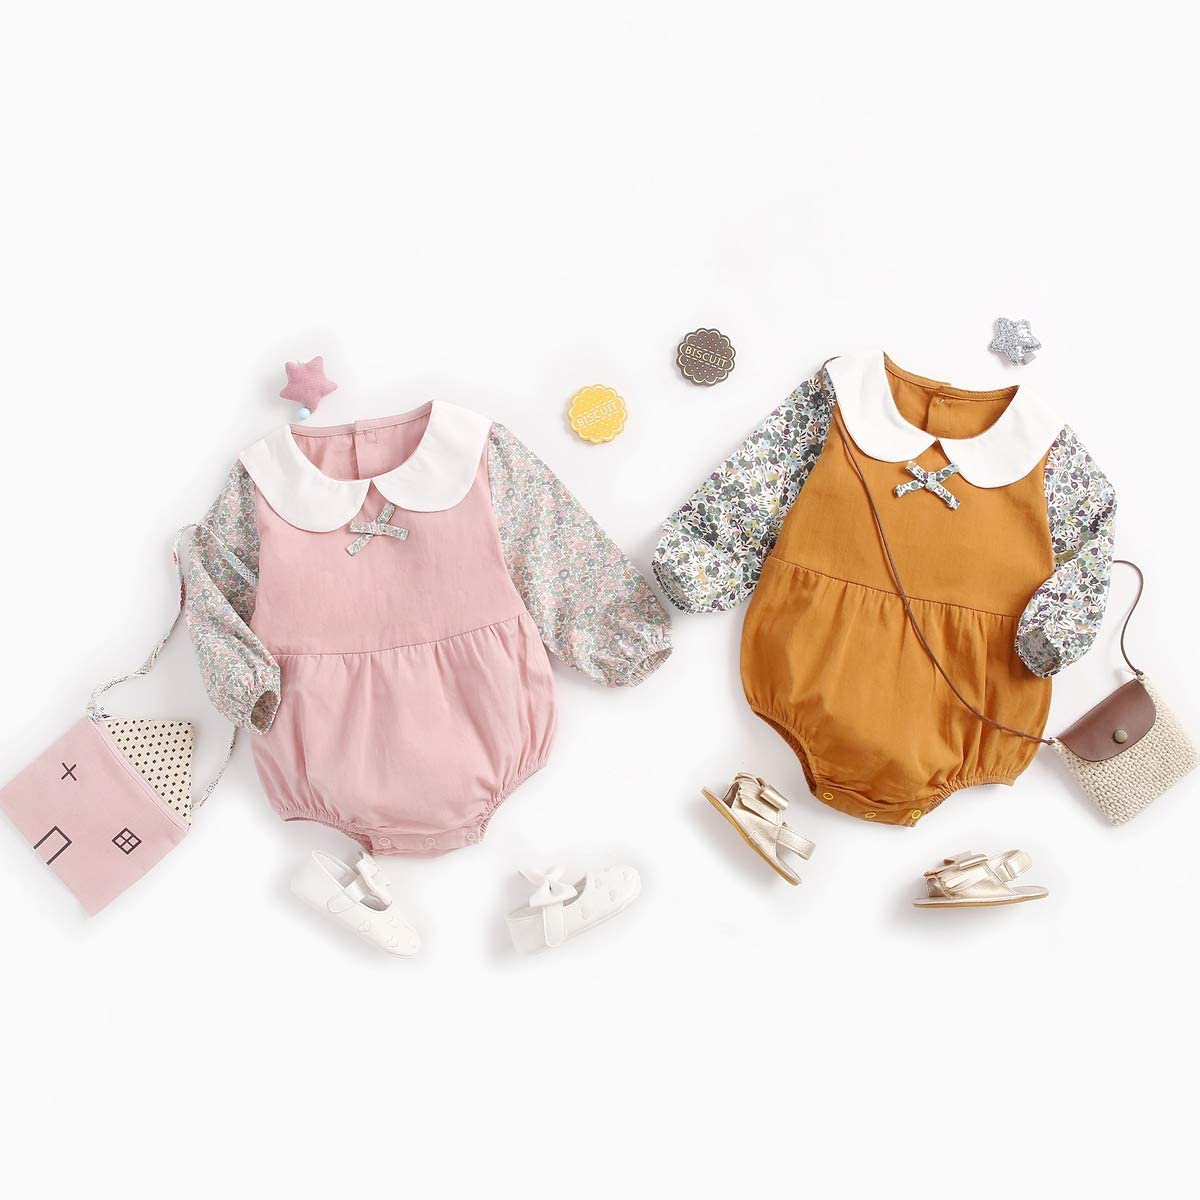 Sanlutoz Cotton Newborn Baby Romper Cute Doll Collar Princess Baby Girls Rompers